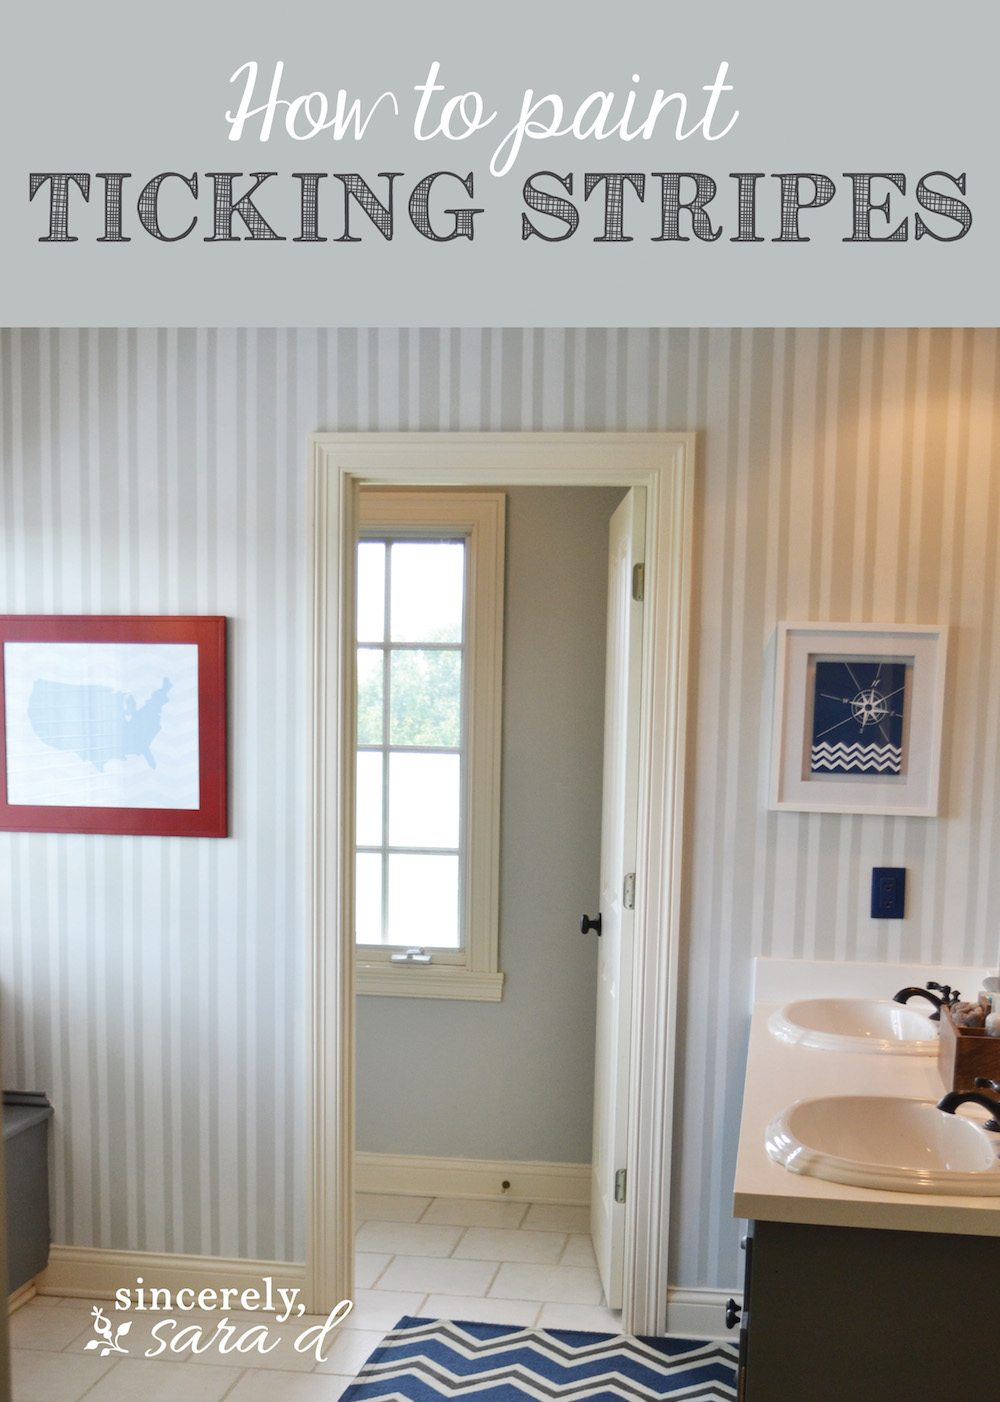 Painted Walls Cool With Painted Striped Bathroom Walls Image